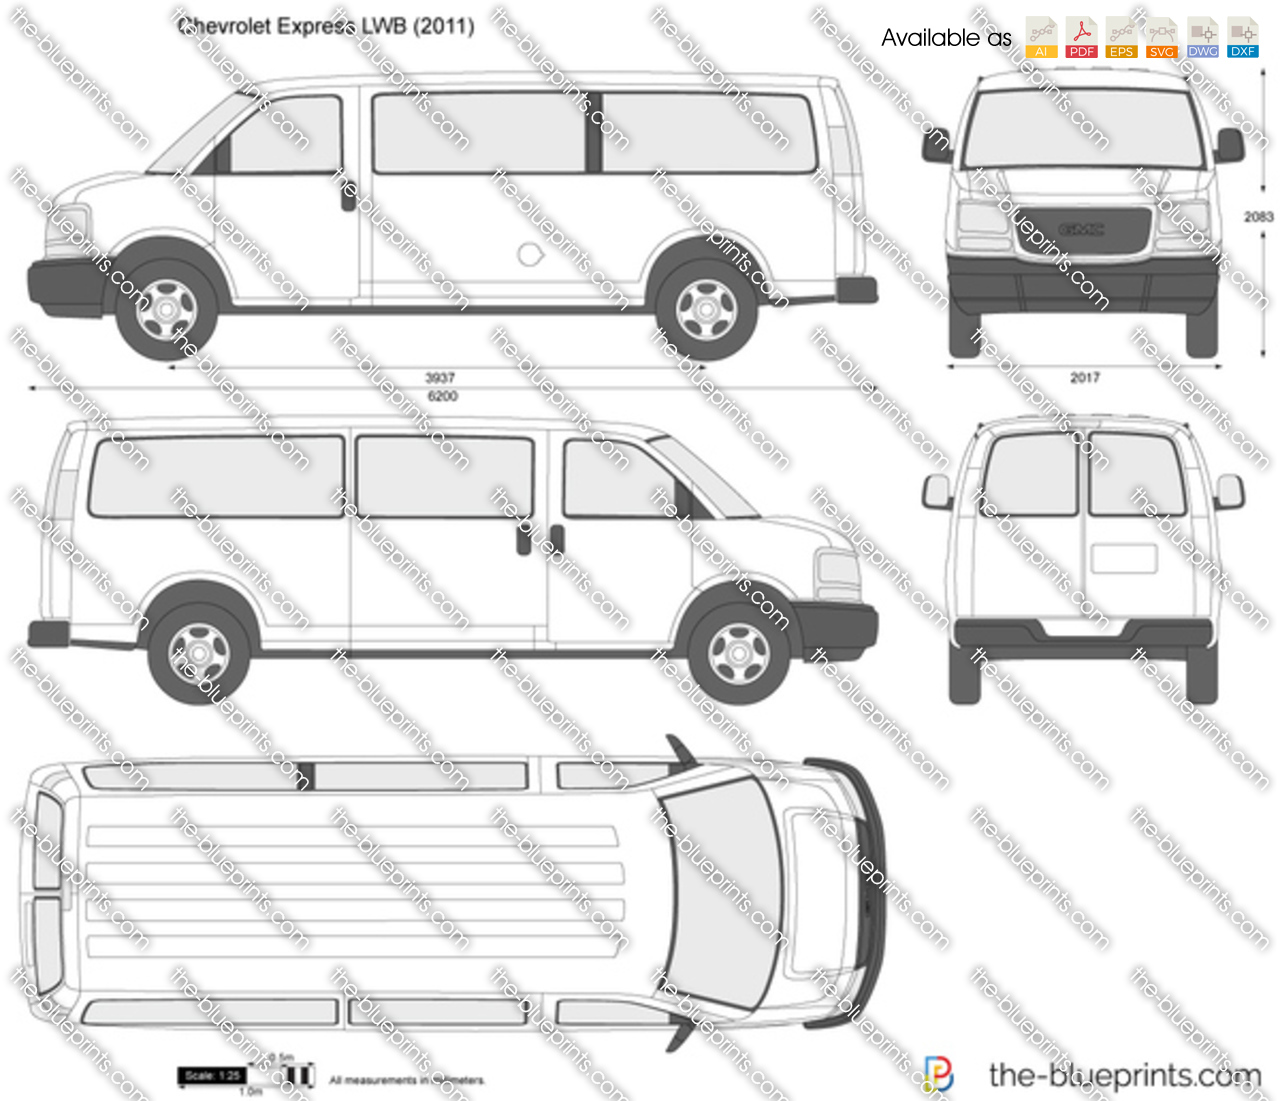 chevrolet express dimensions